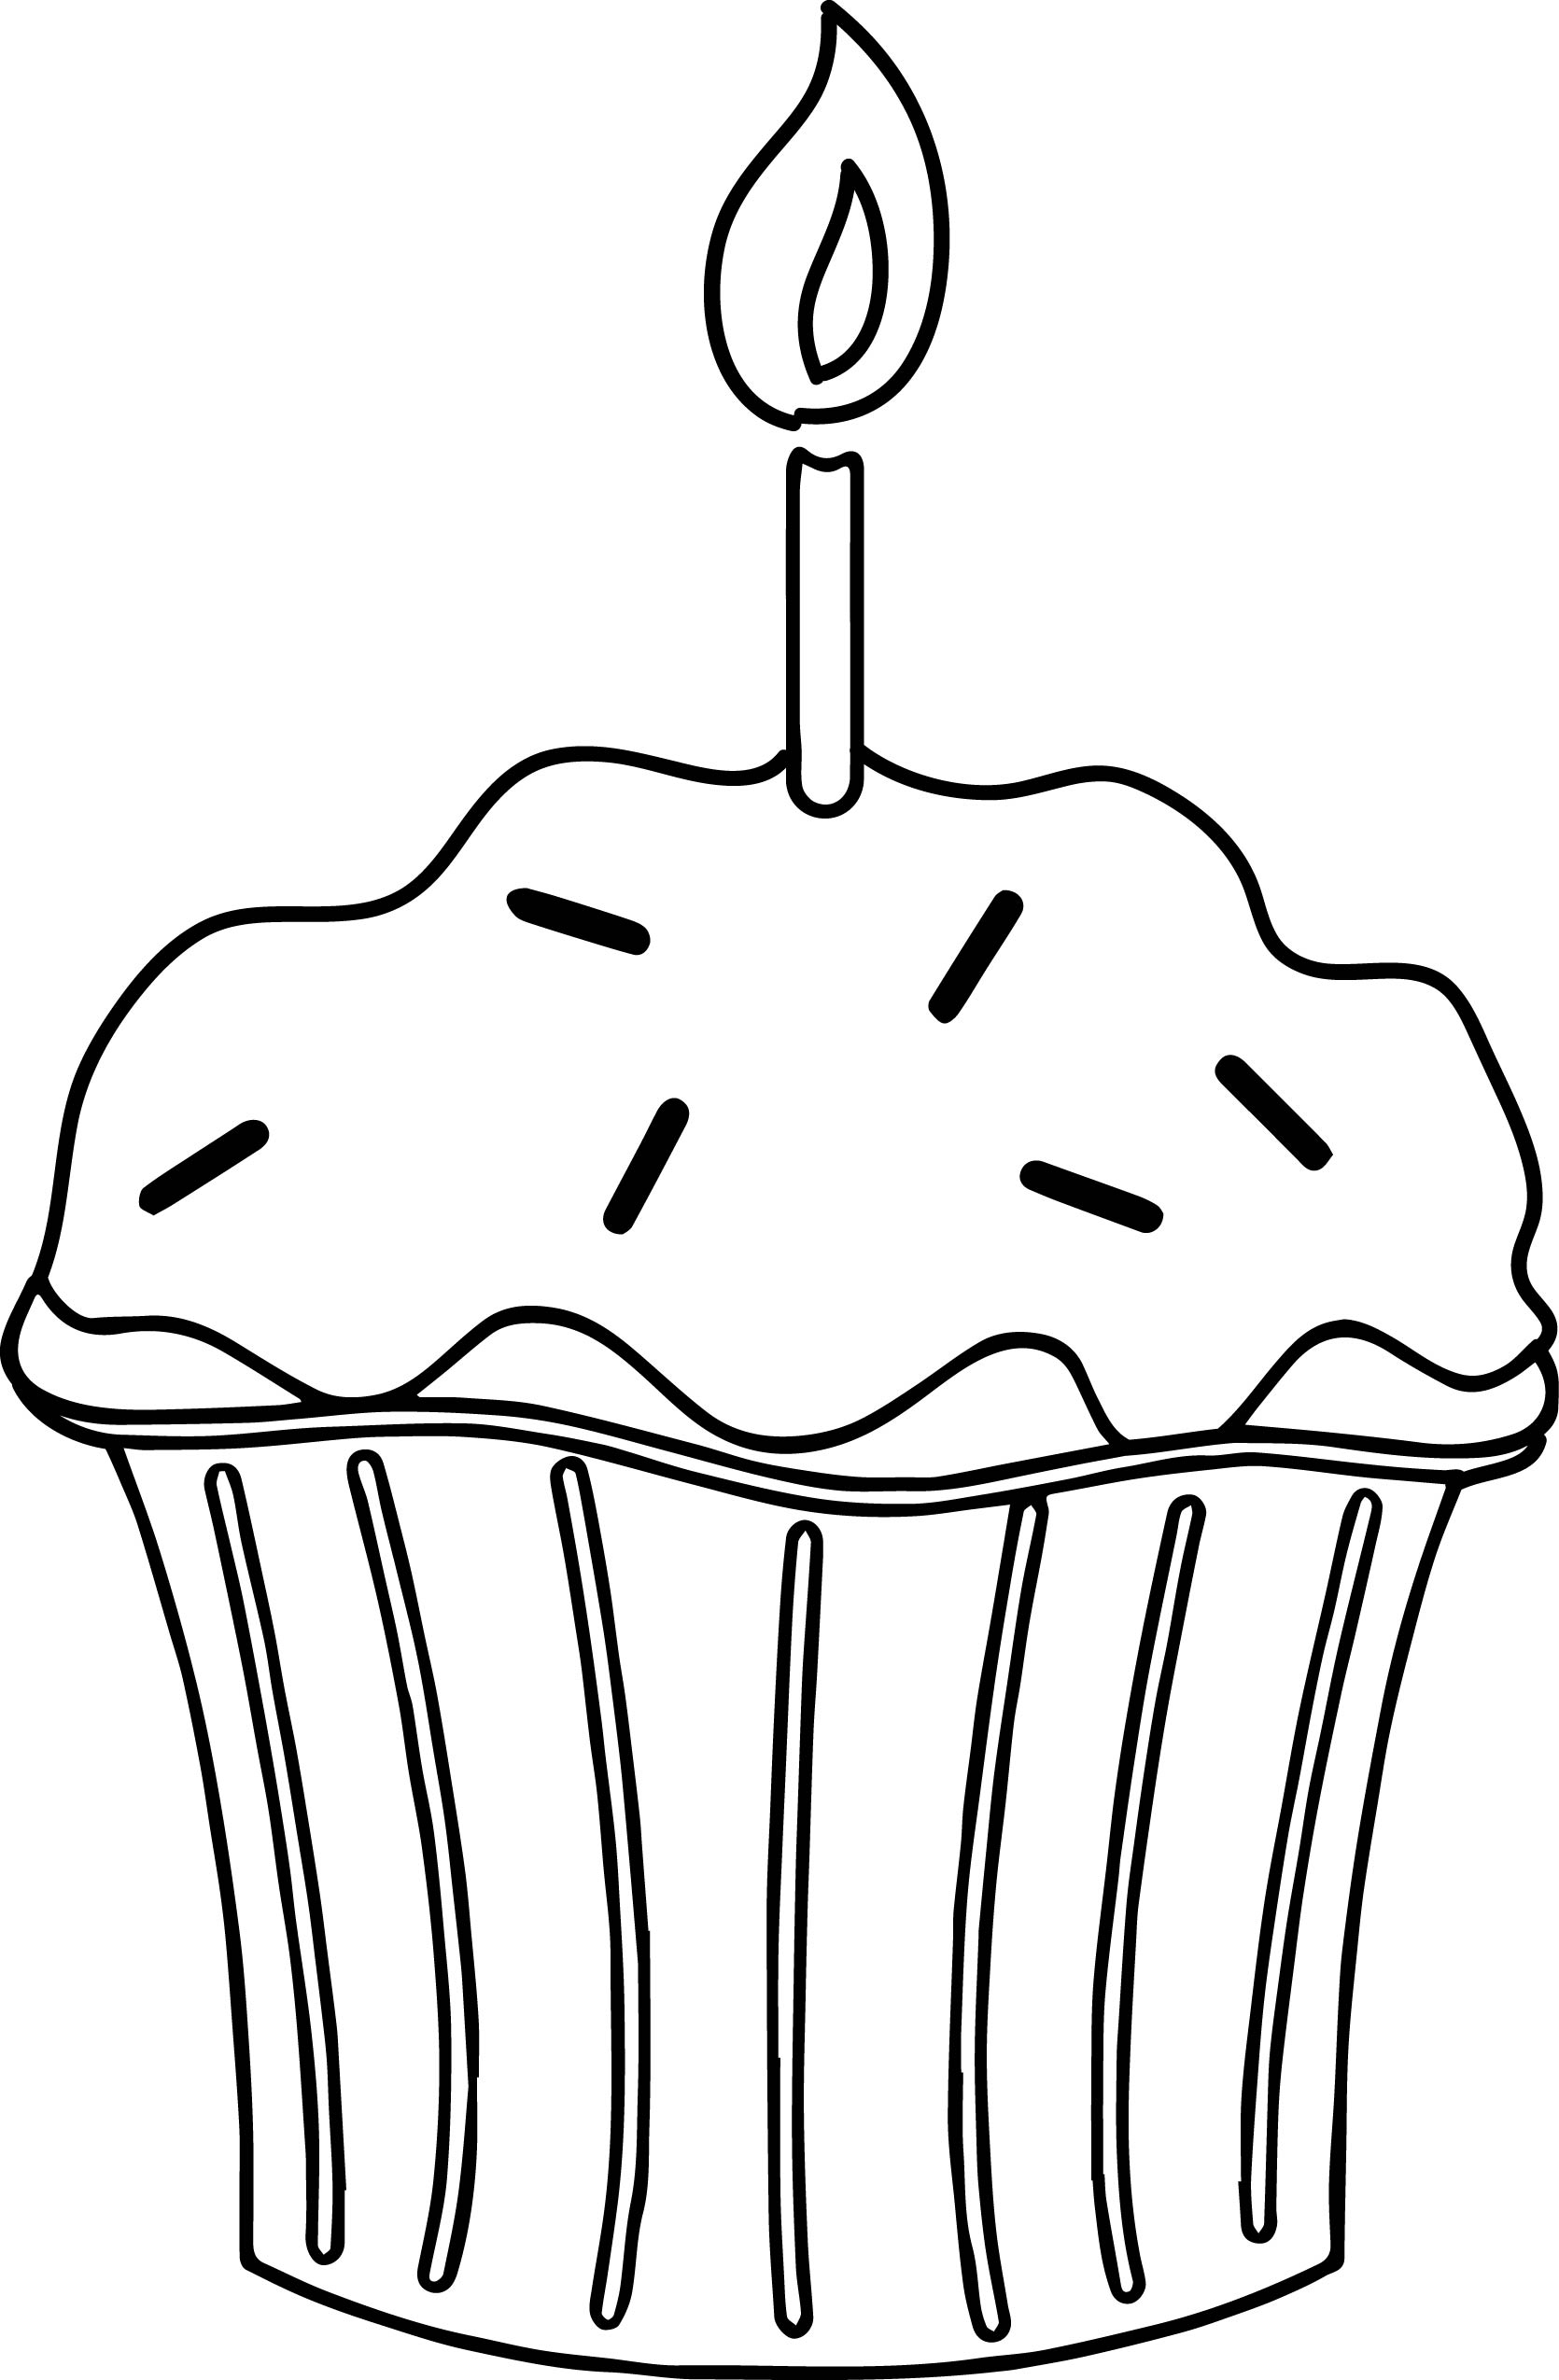 Birthday Cupcake With Candle Coloring Page Wecoloringpage Com